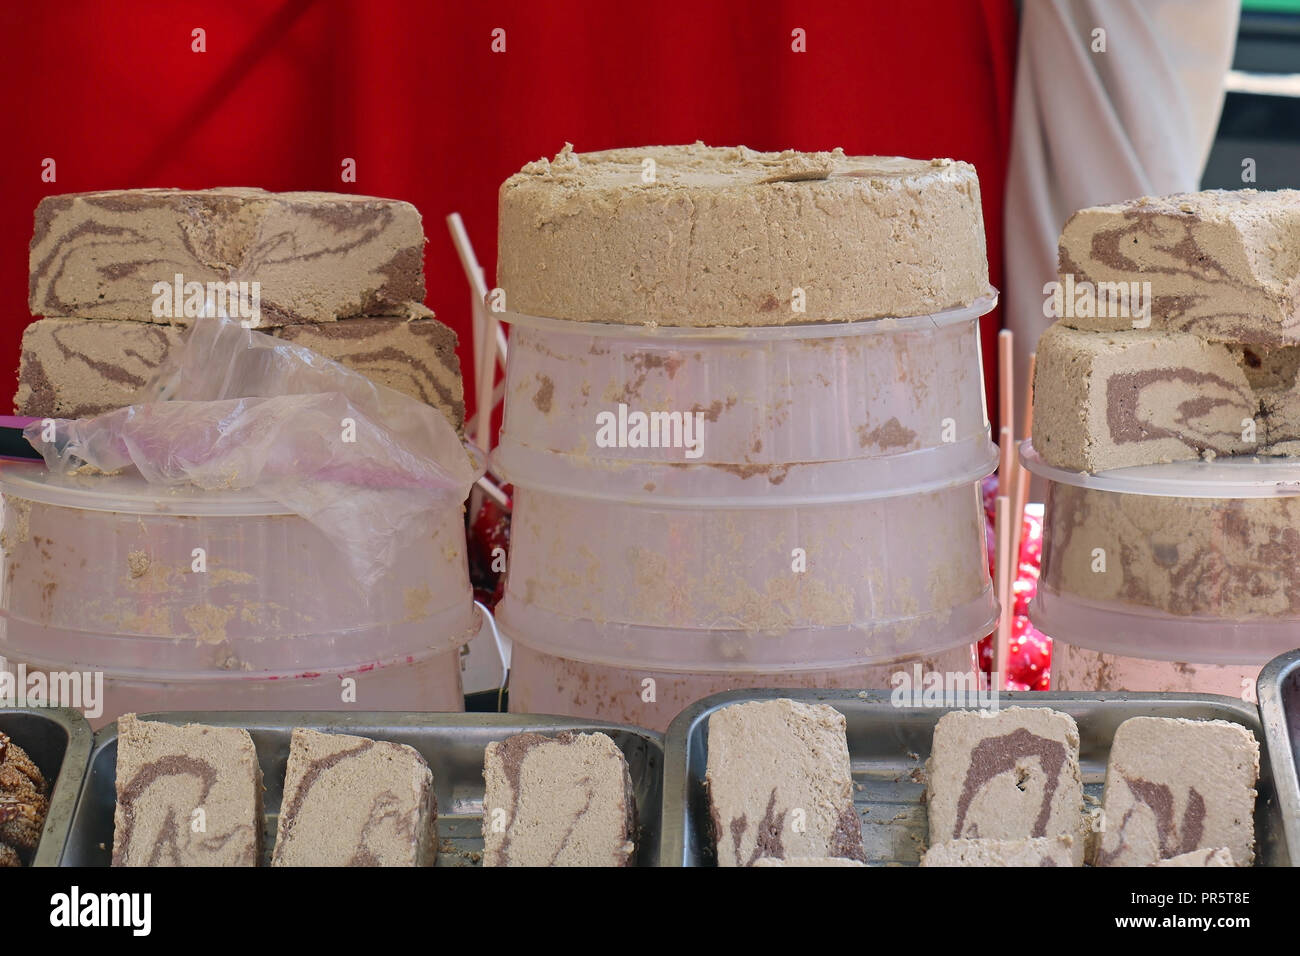 Food stand on agricultural fair selling traditional halva sweets - Stock Image